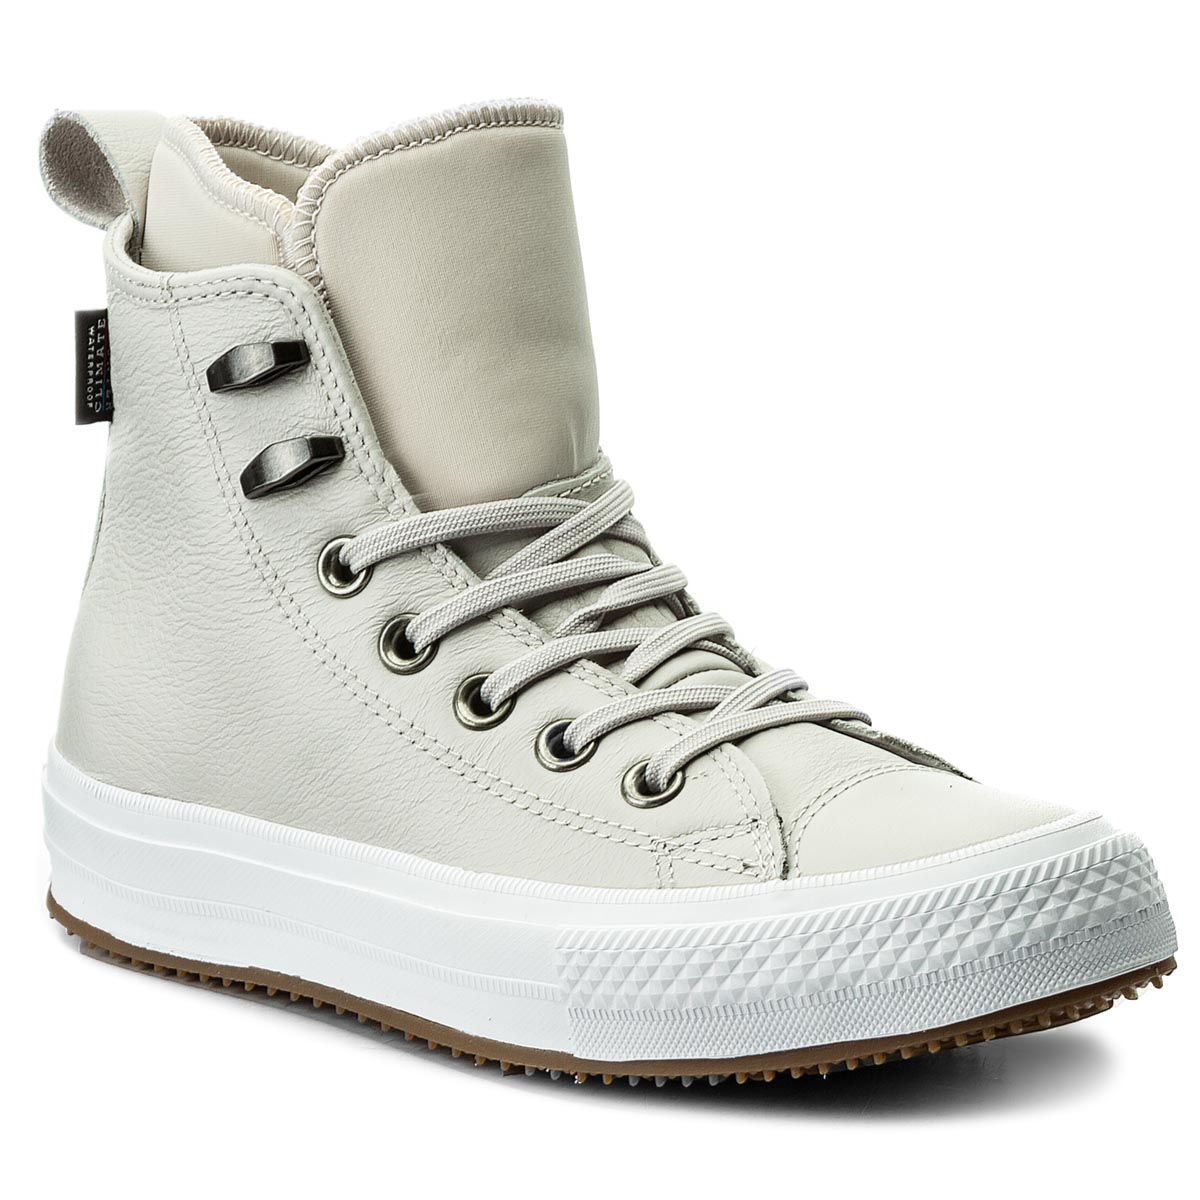 Sneakersy CONVERSE – Ctas Wp Boot Hi 557944C Pale Putty/Pale Putty/White